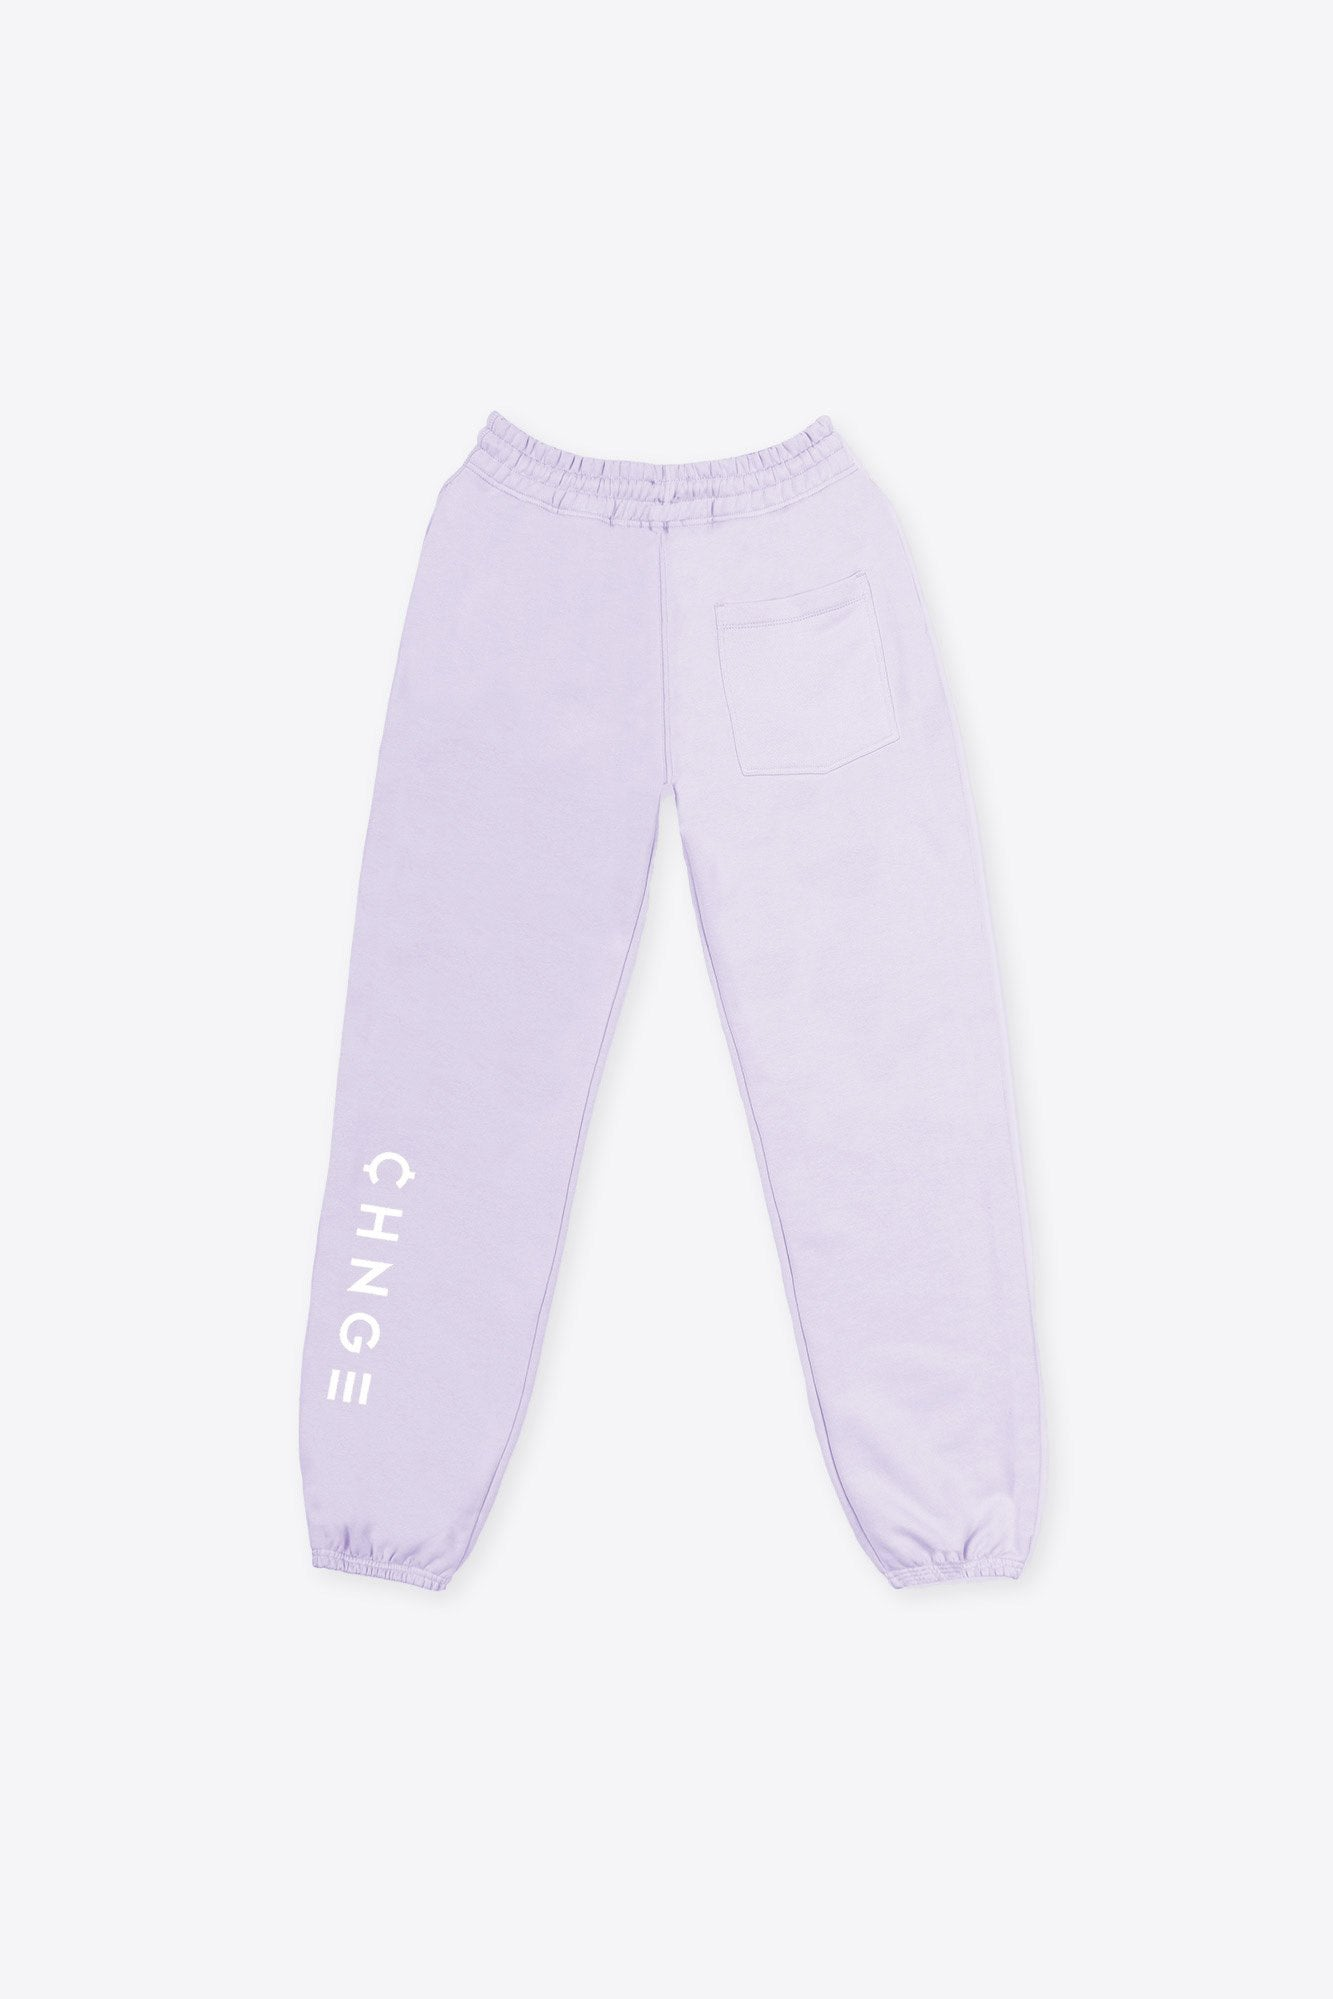 Violet Worldwide Sweatpant